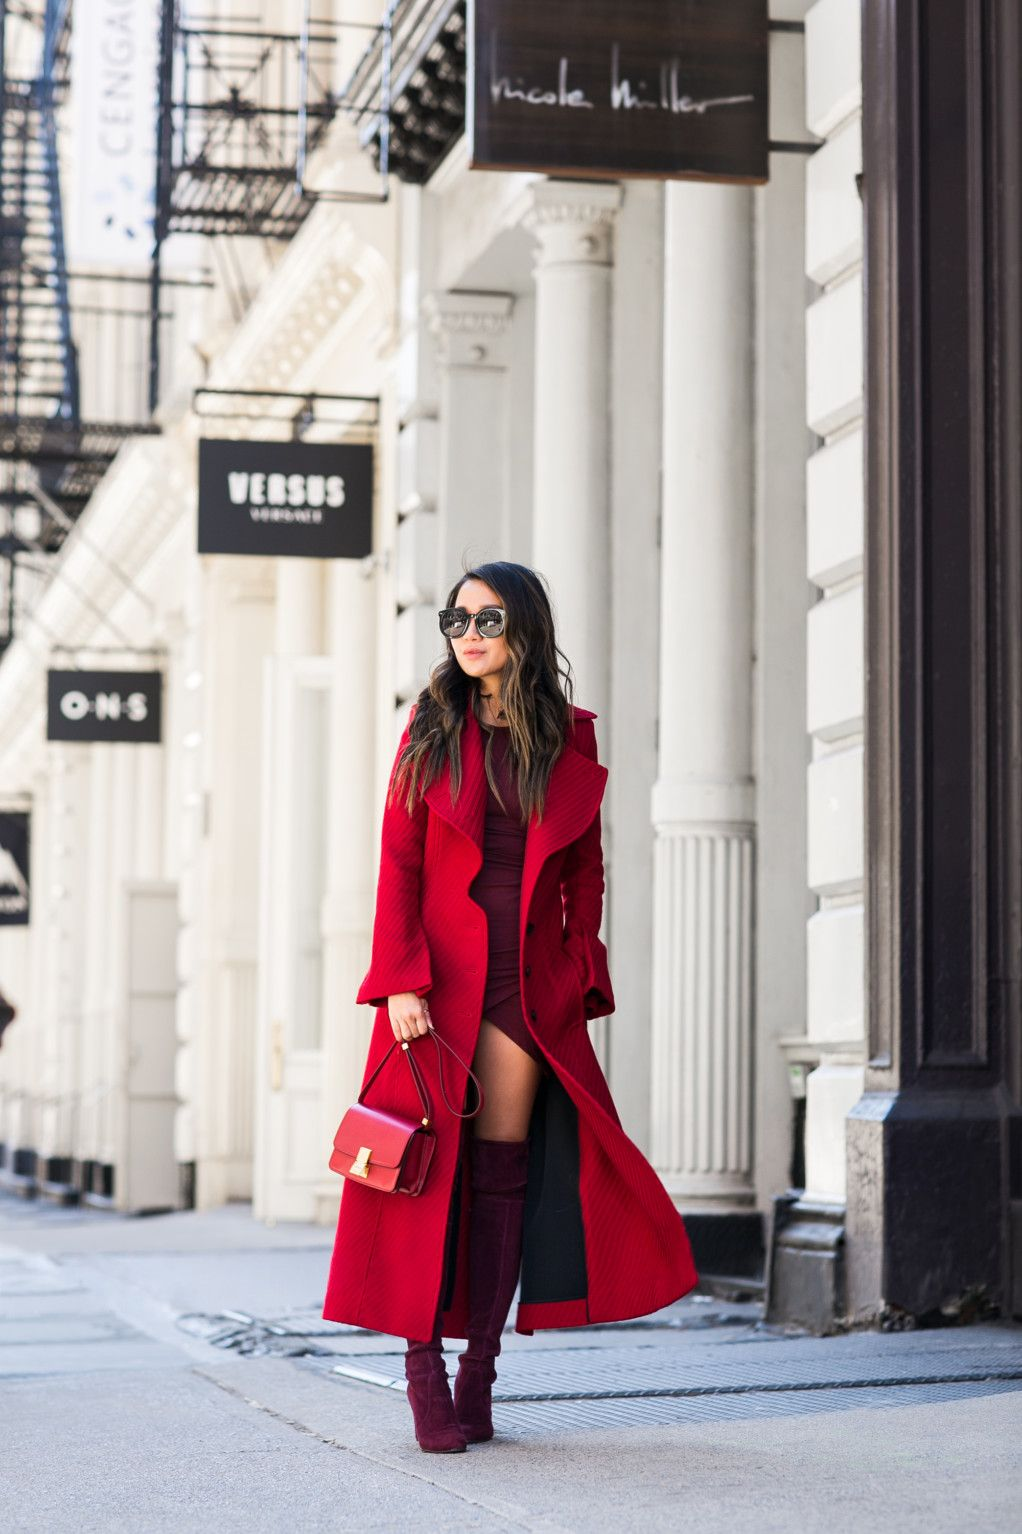 Shades Of Wine Red Long Coat Burgundy Boots Wendy S Lookbook Red Long Coat Burgundy Boots Long Coat